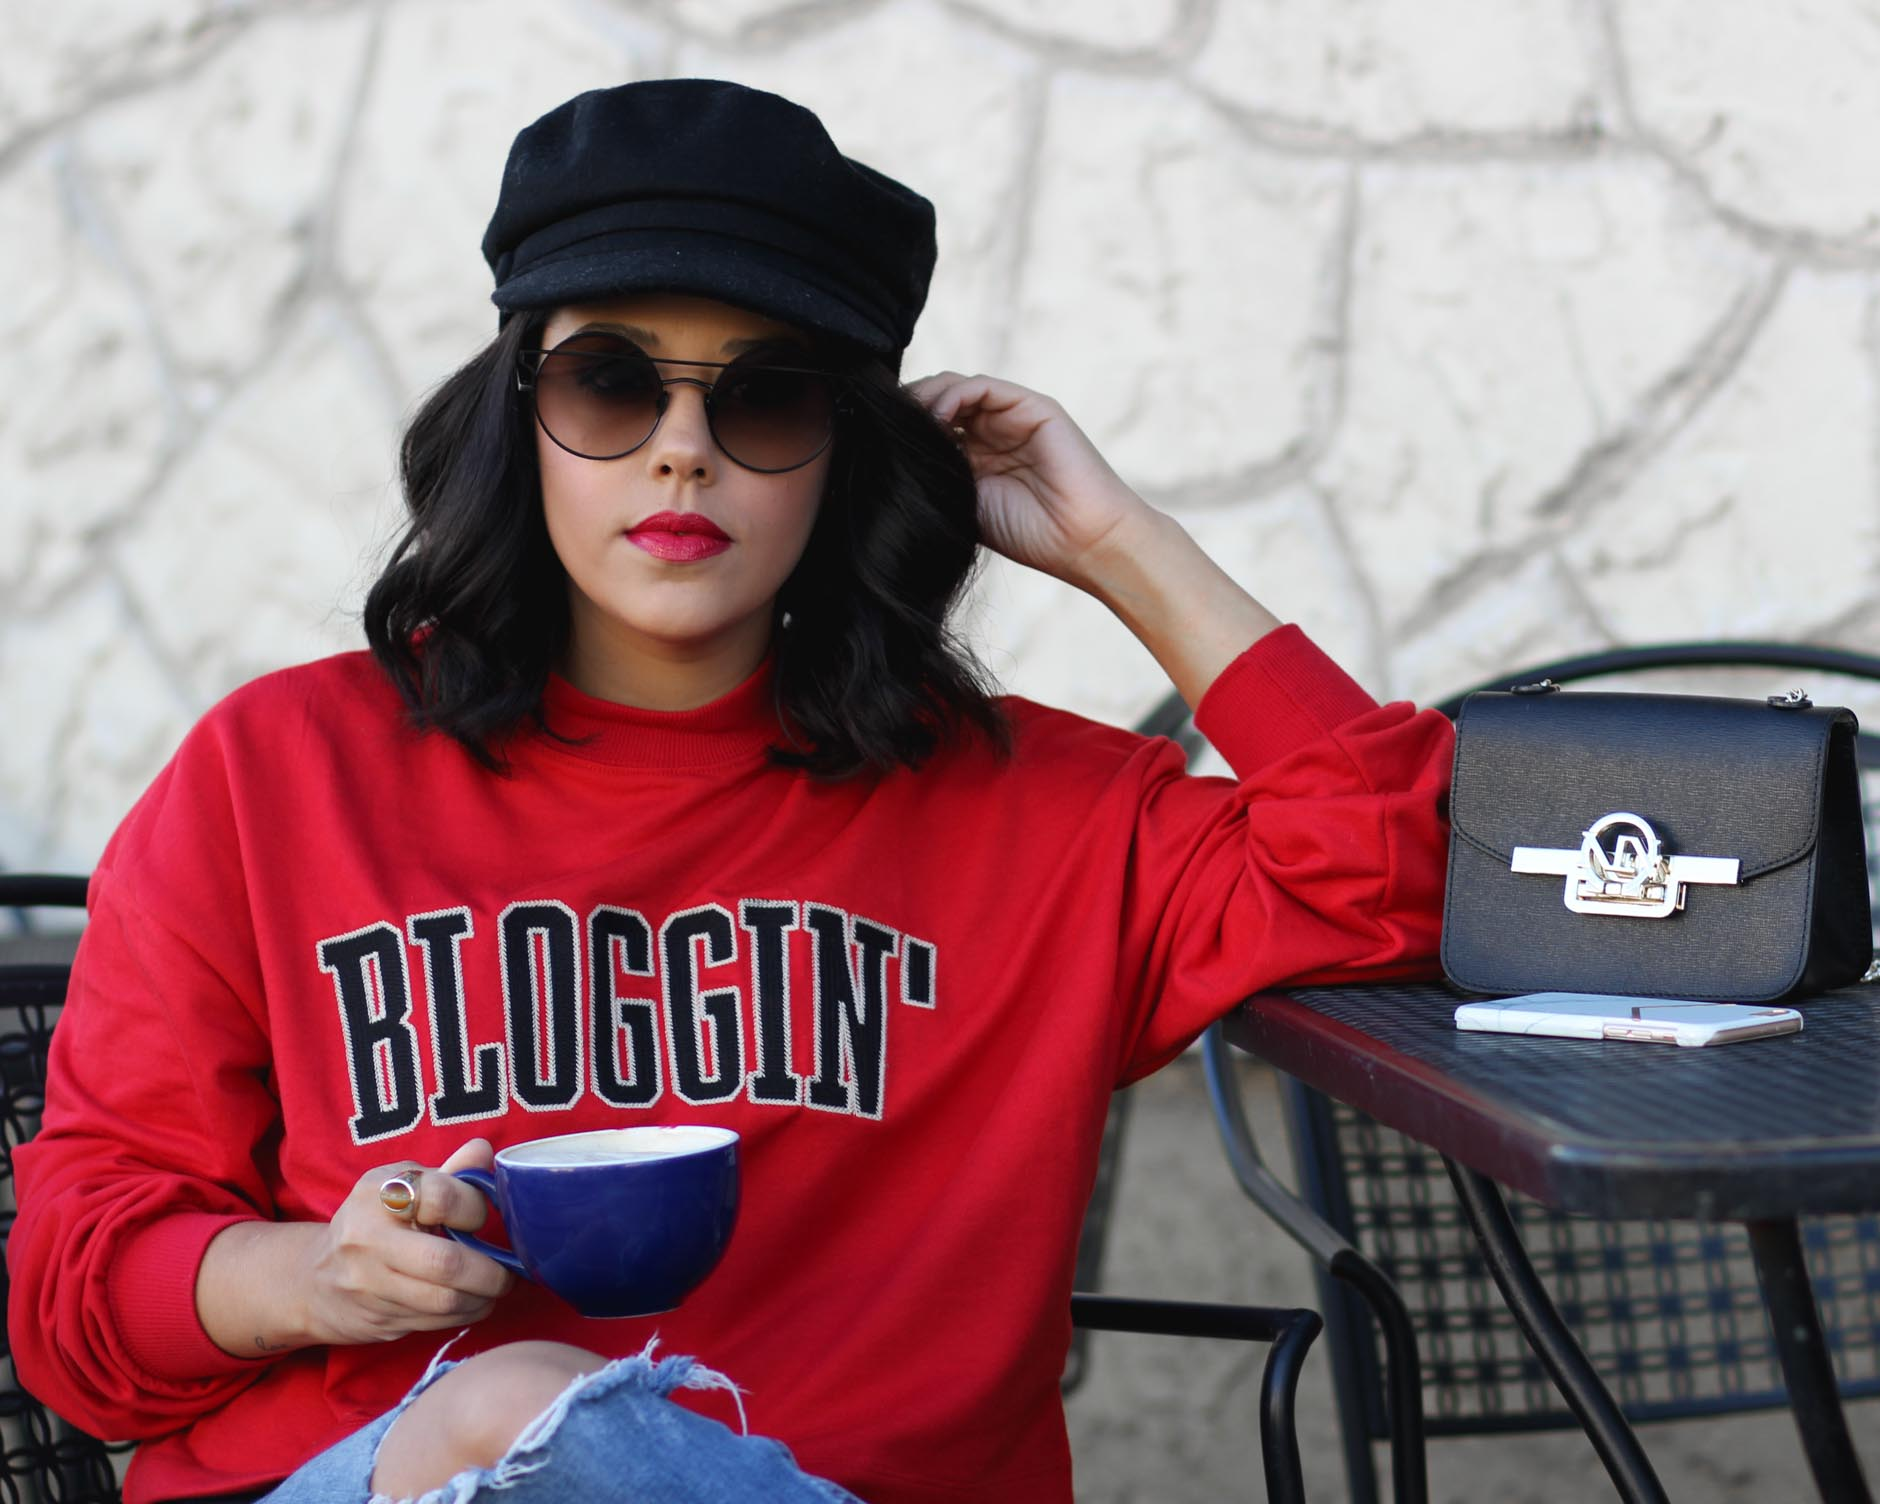 lifestyle blogger naty michele wearing a blogging sweatshirt and drinking coffee